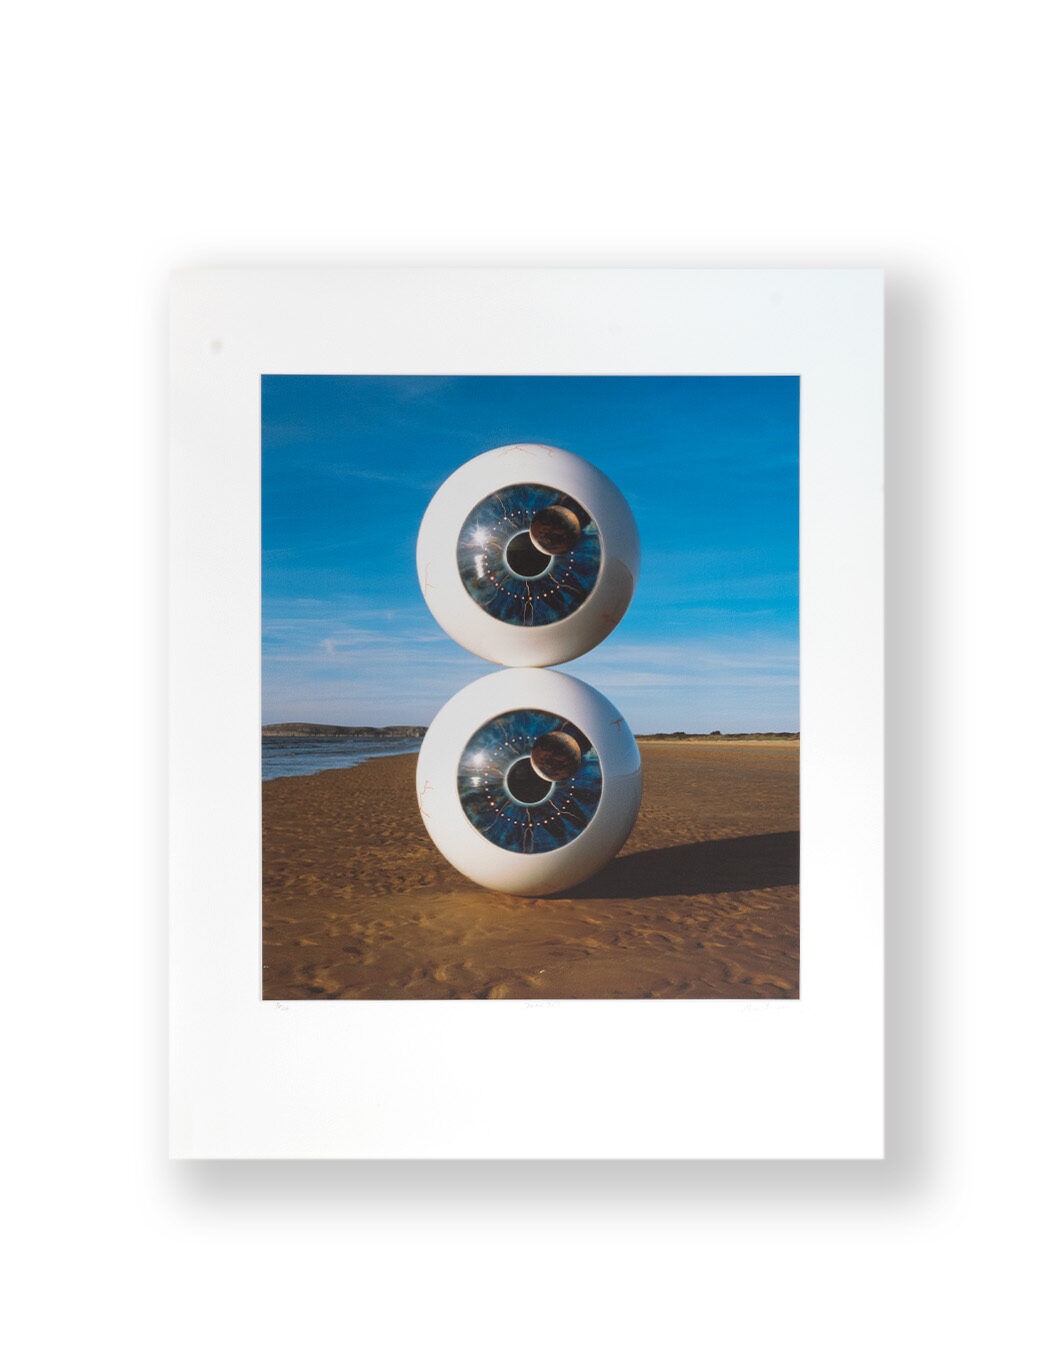 PINK FLOYD PULSE DVD COVER SIGNED BY STORM THORGERSON